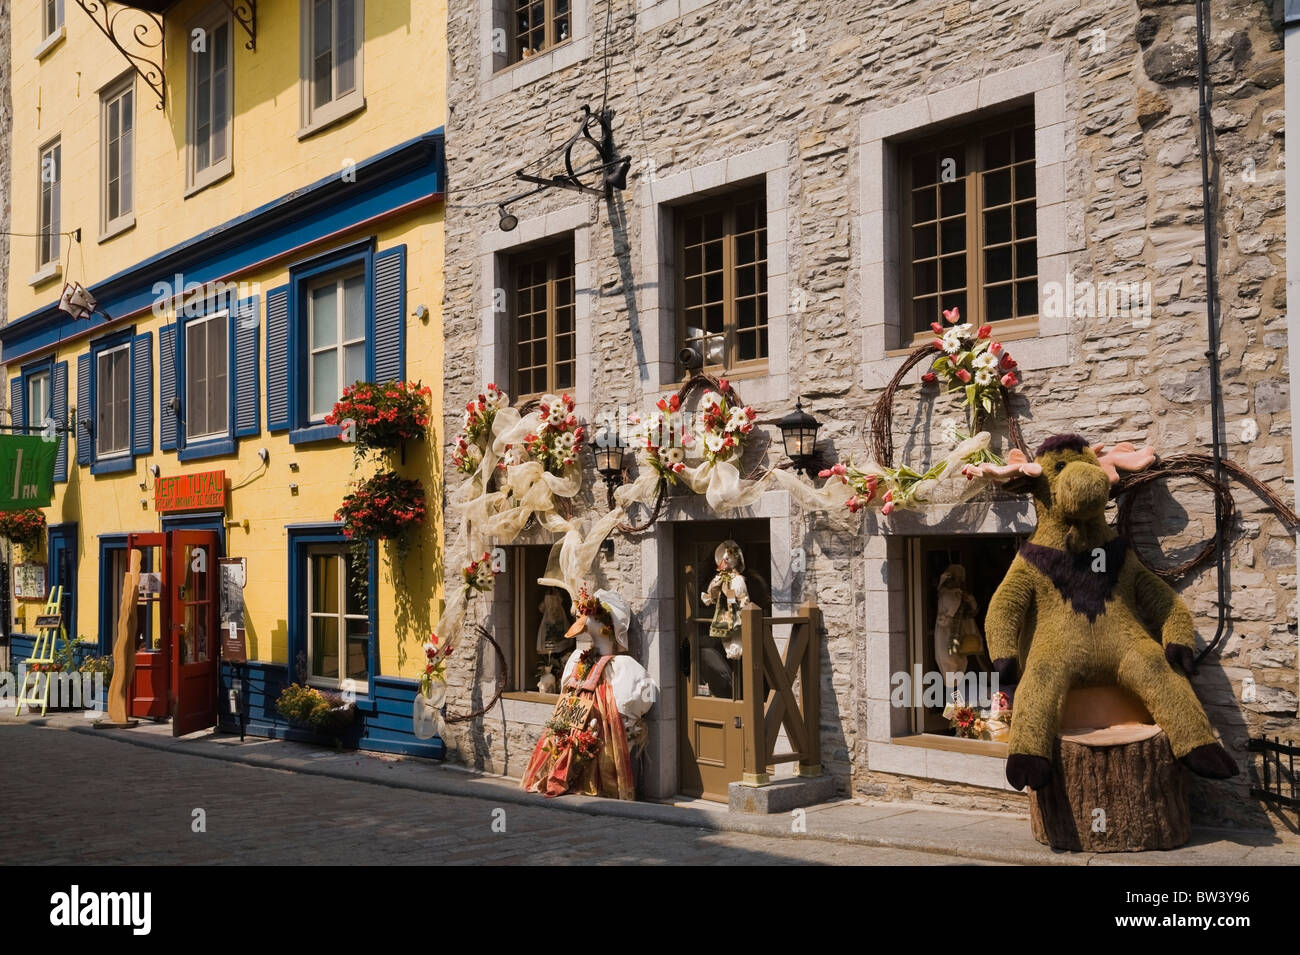 Arts and crafts shopping boutiques on Rue Cul-de-Sac, Lower Town, Old Quebec City, Quebec, Canada - Stock Image